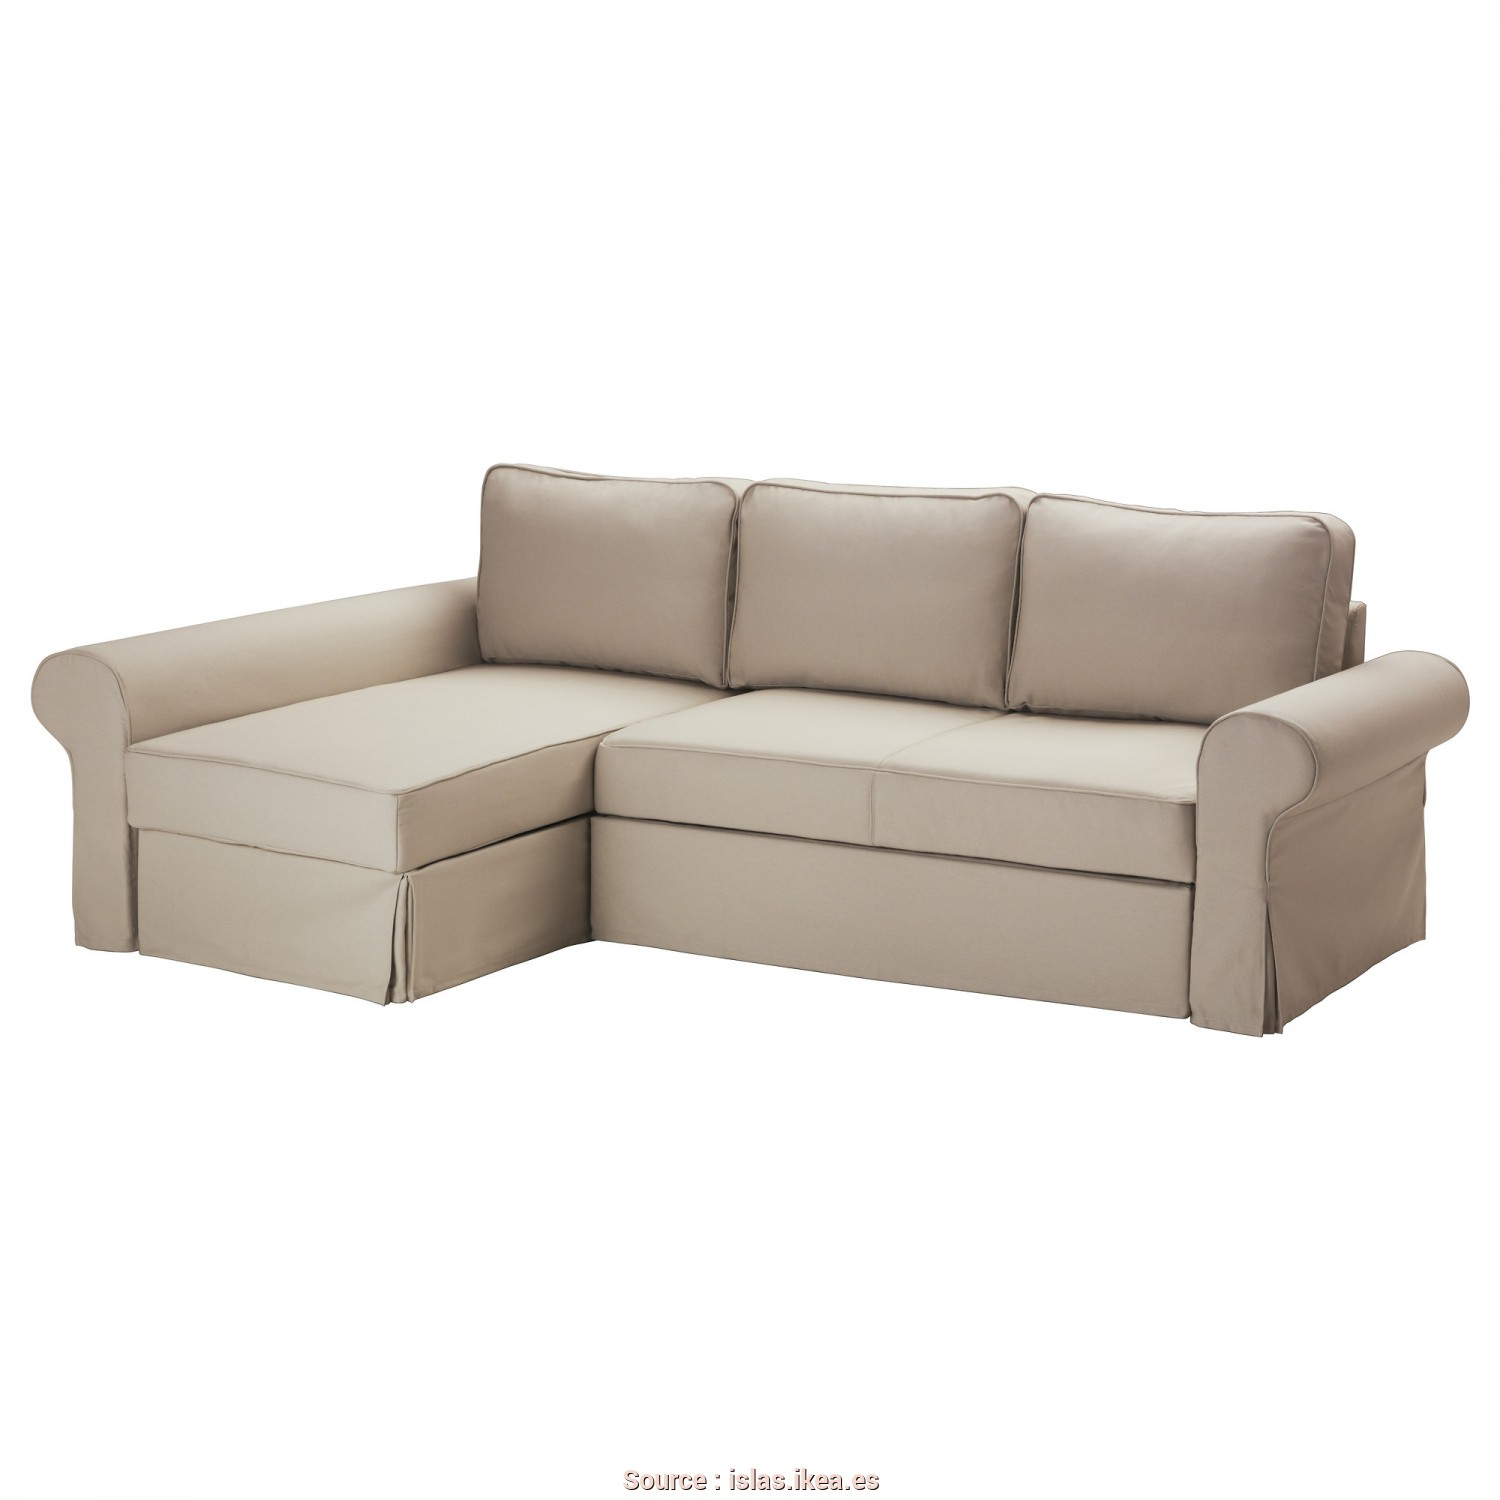 Loveable 6 Ikea Backabro Sofa, With Chaise Instructions